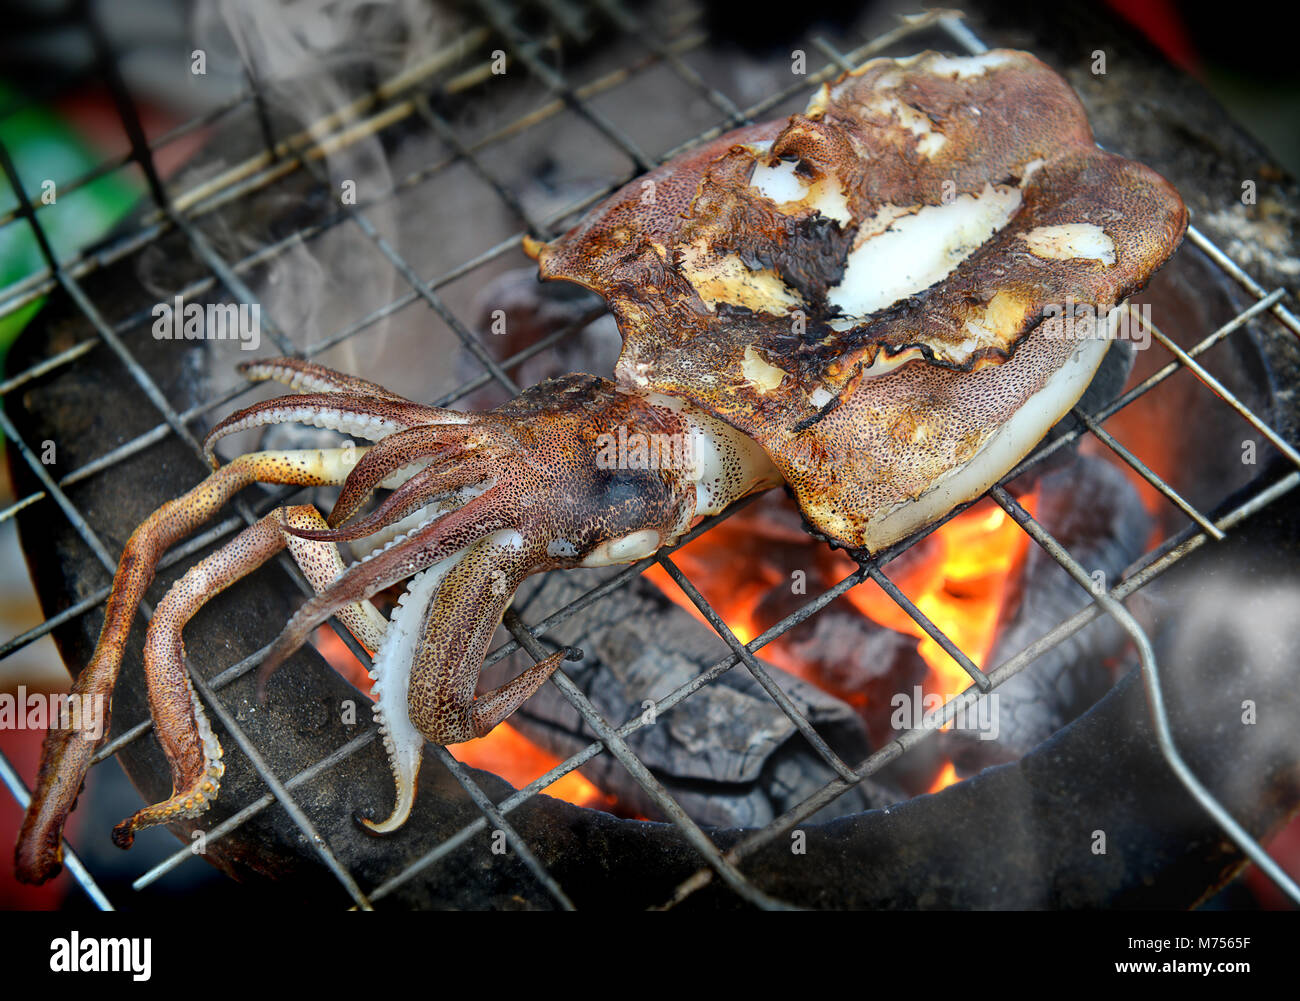 Charcoal grill restaurant stock photos charcoal grill for Fish on fire menu